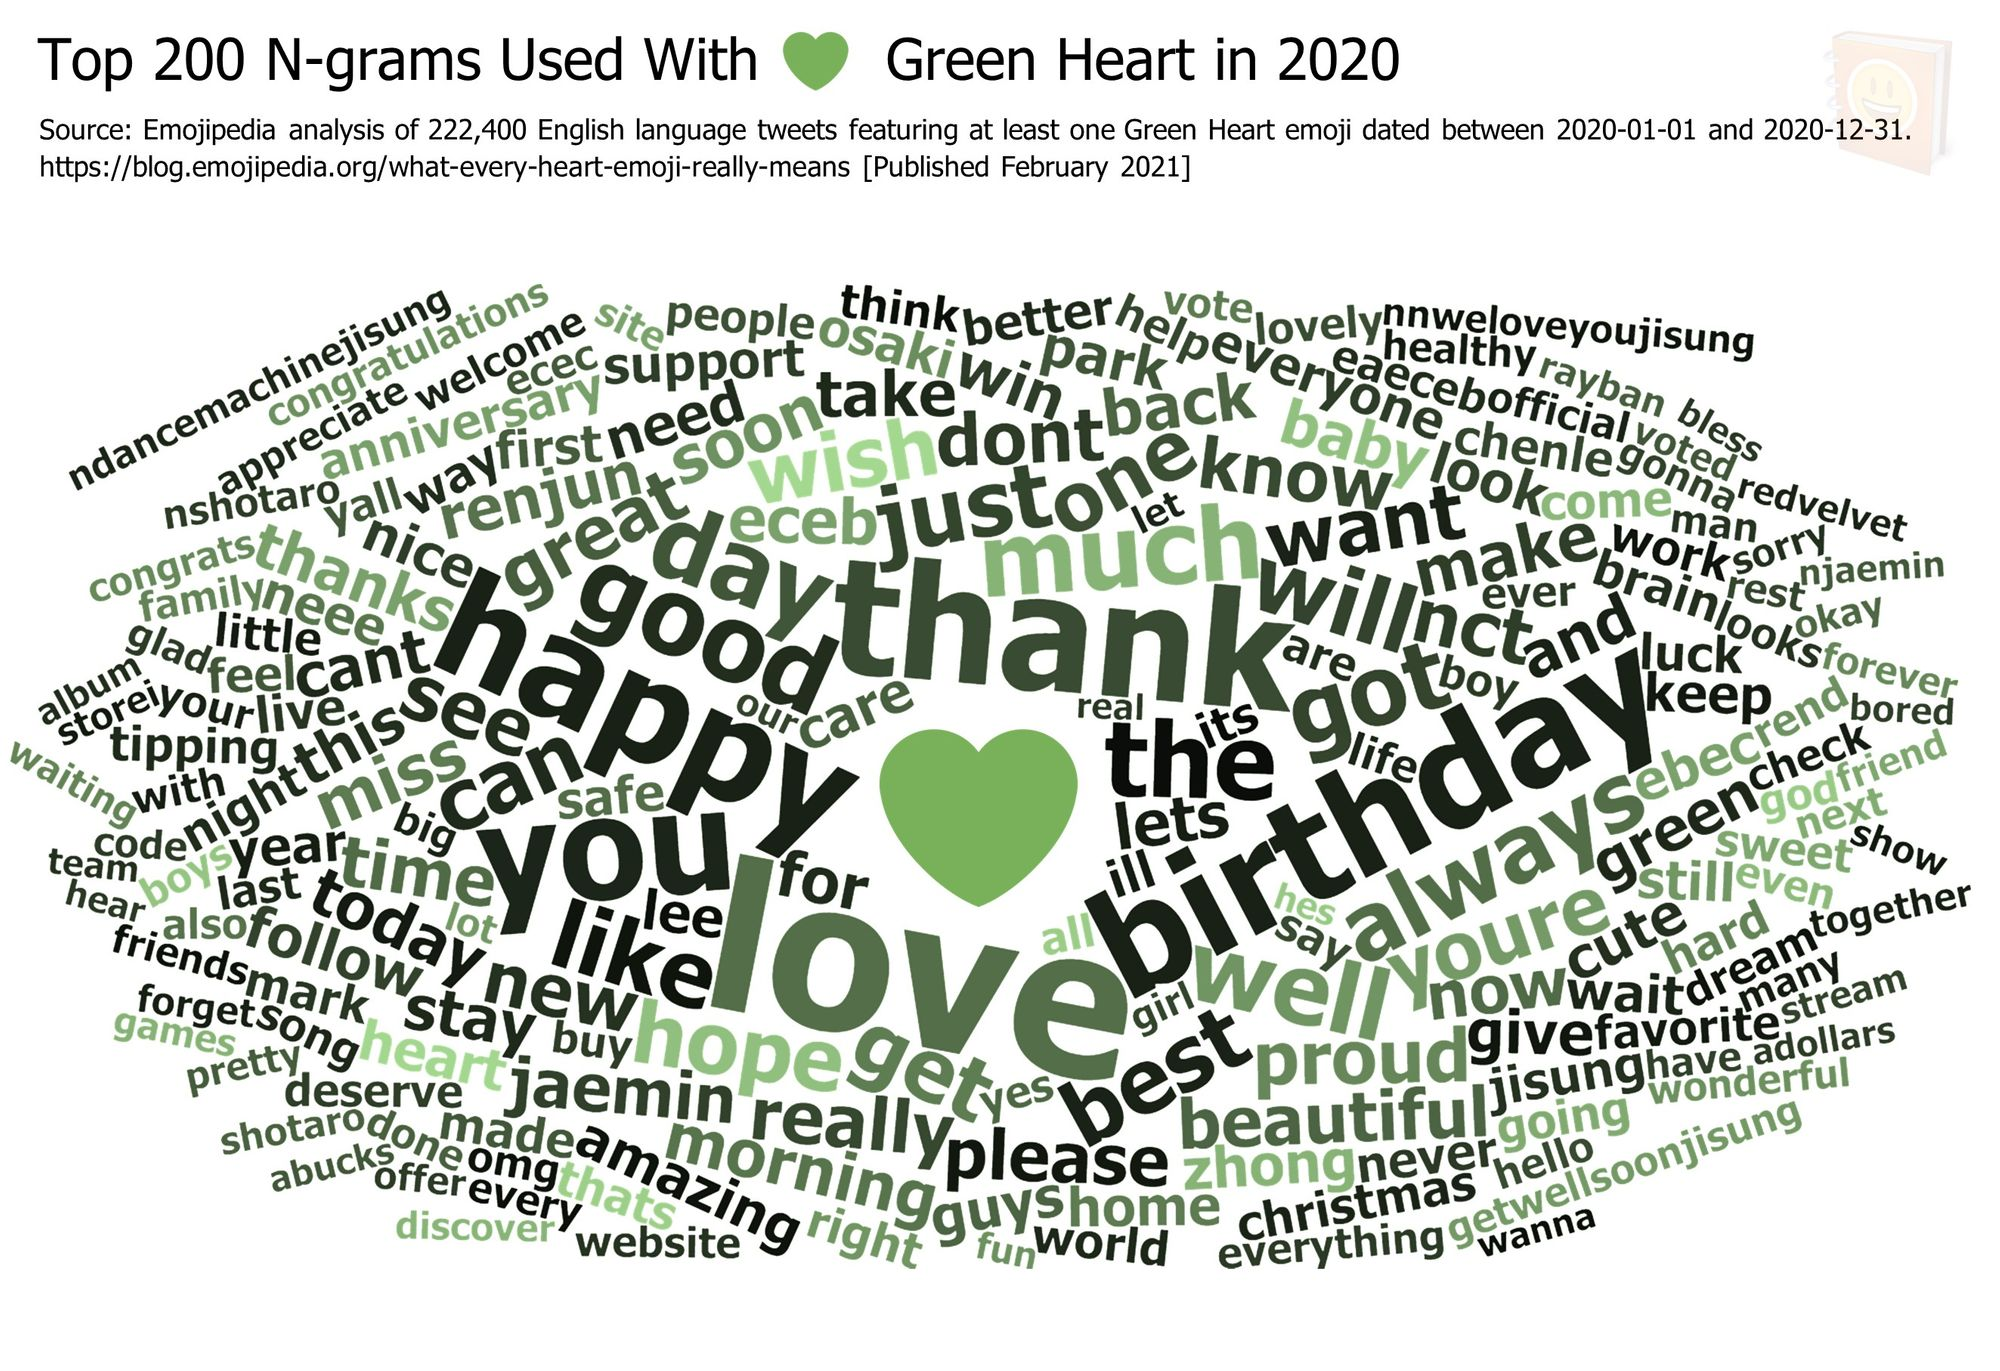 Emojipedia-Blog---What-Every-Heart-Emoji-Really-Means---Top-200-N-grams-Used-With-------Green-Heart-in-2020